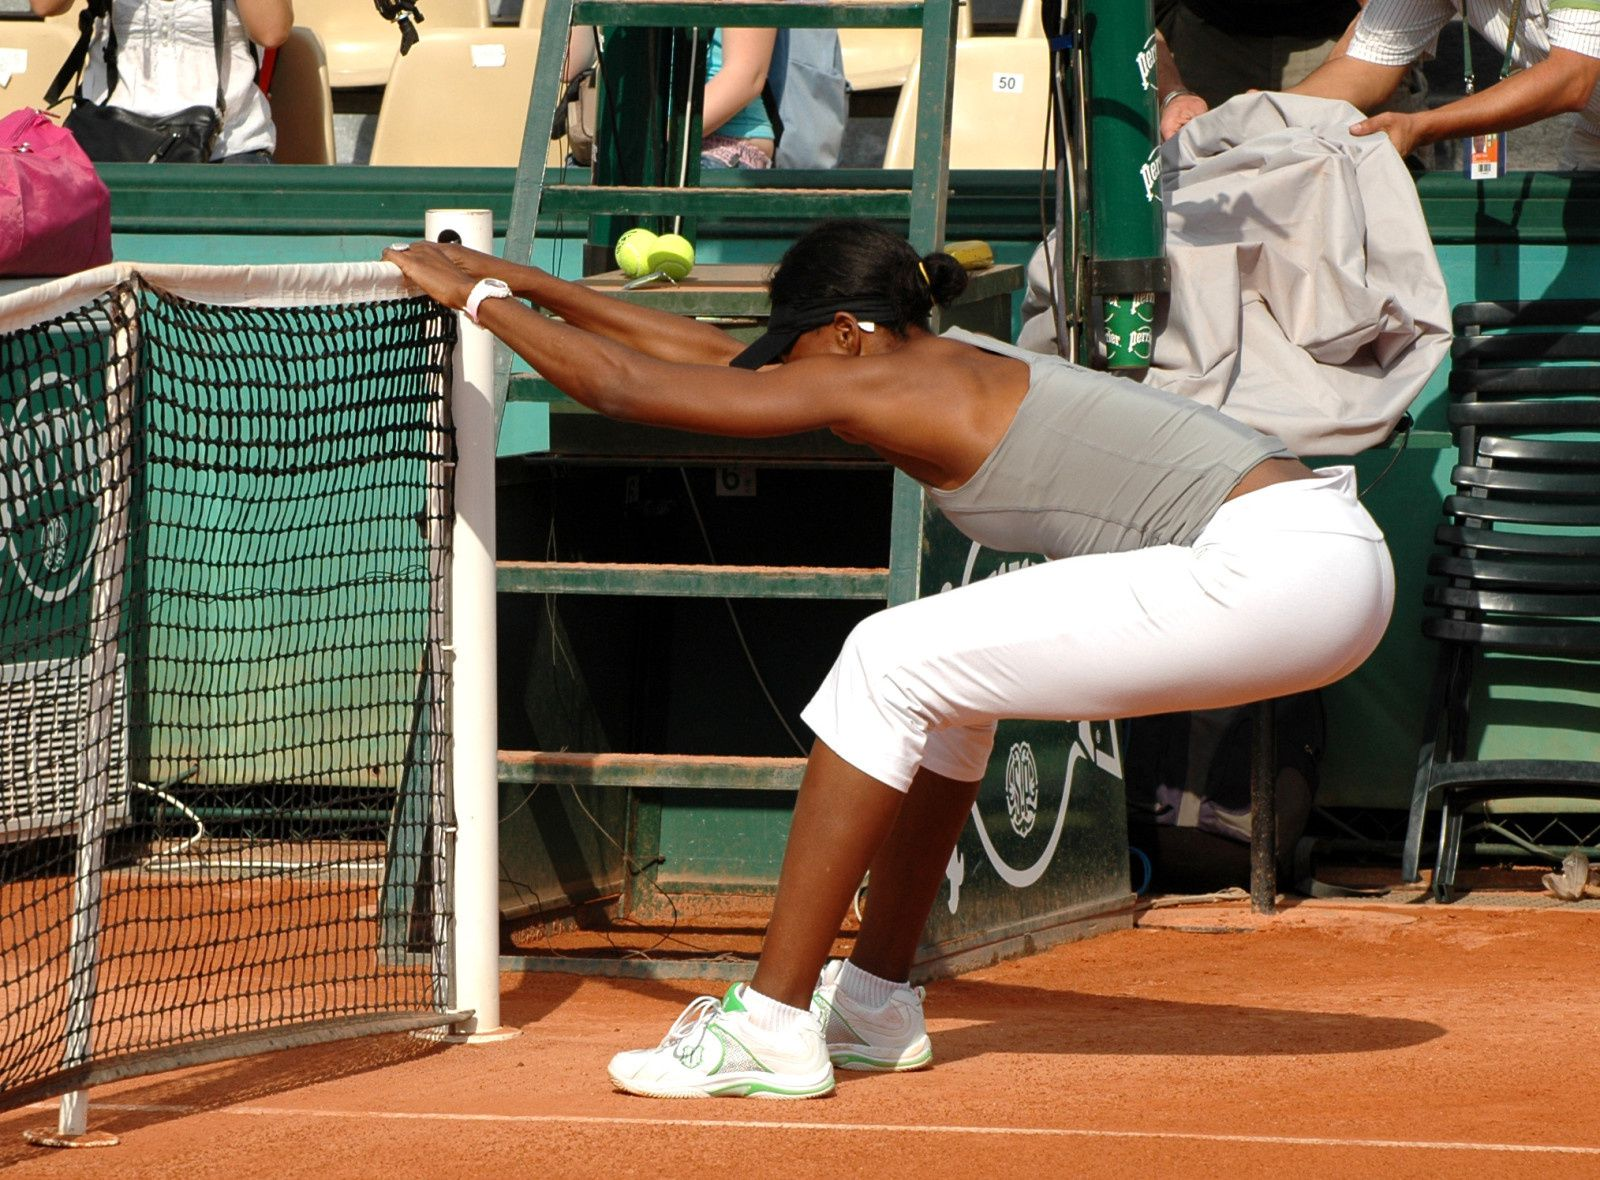 Venus Williams Roland Garros 2009